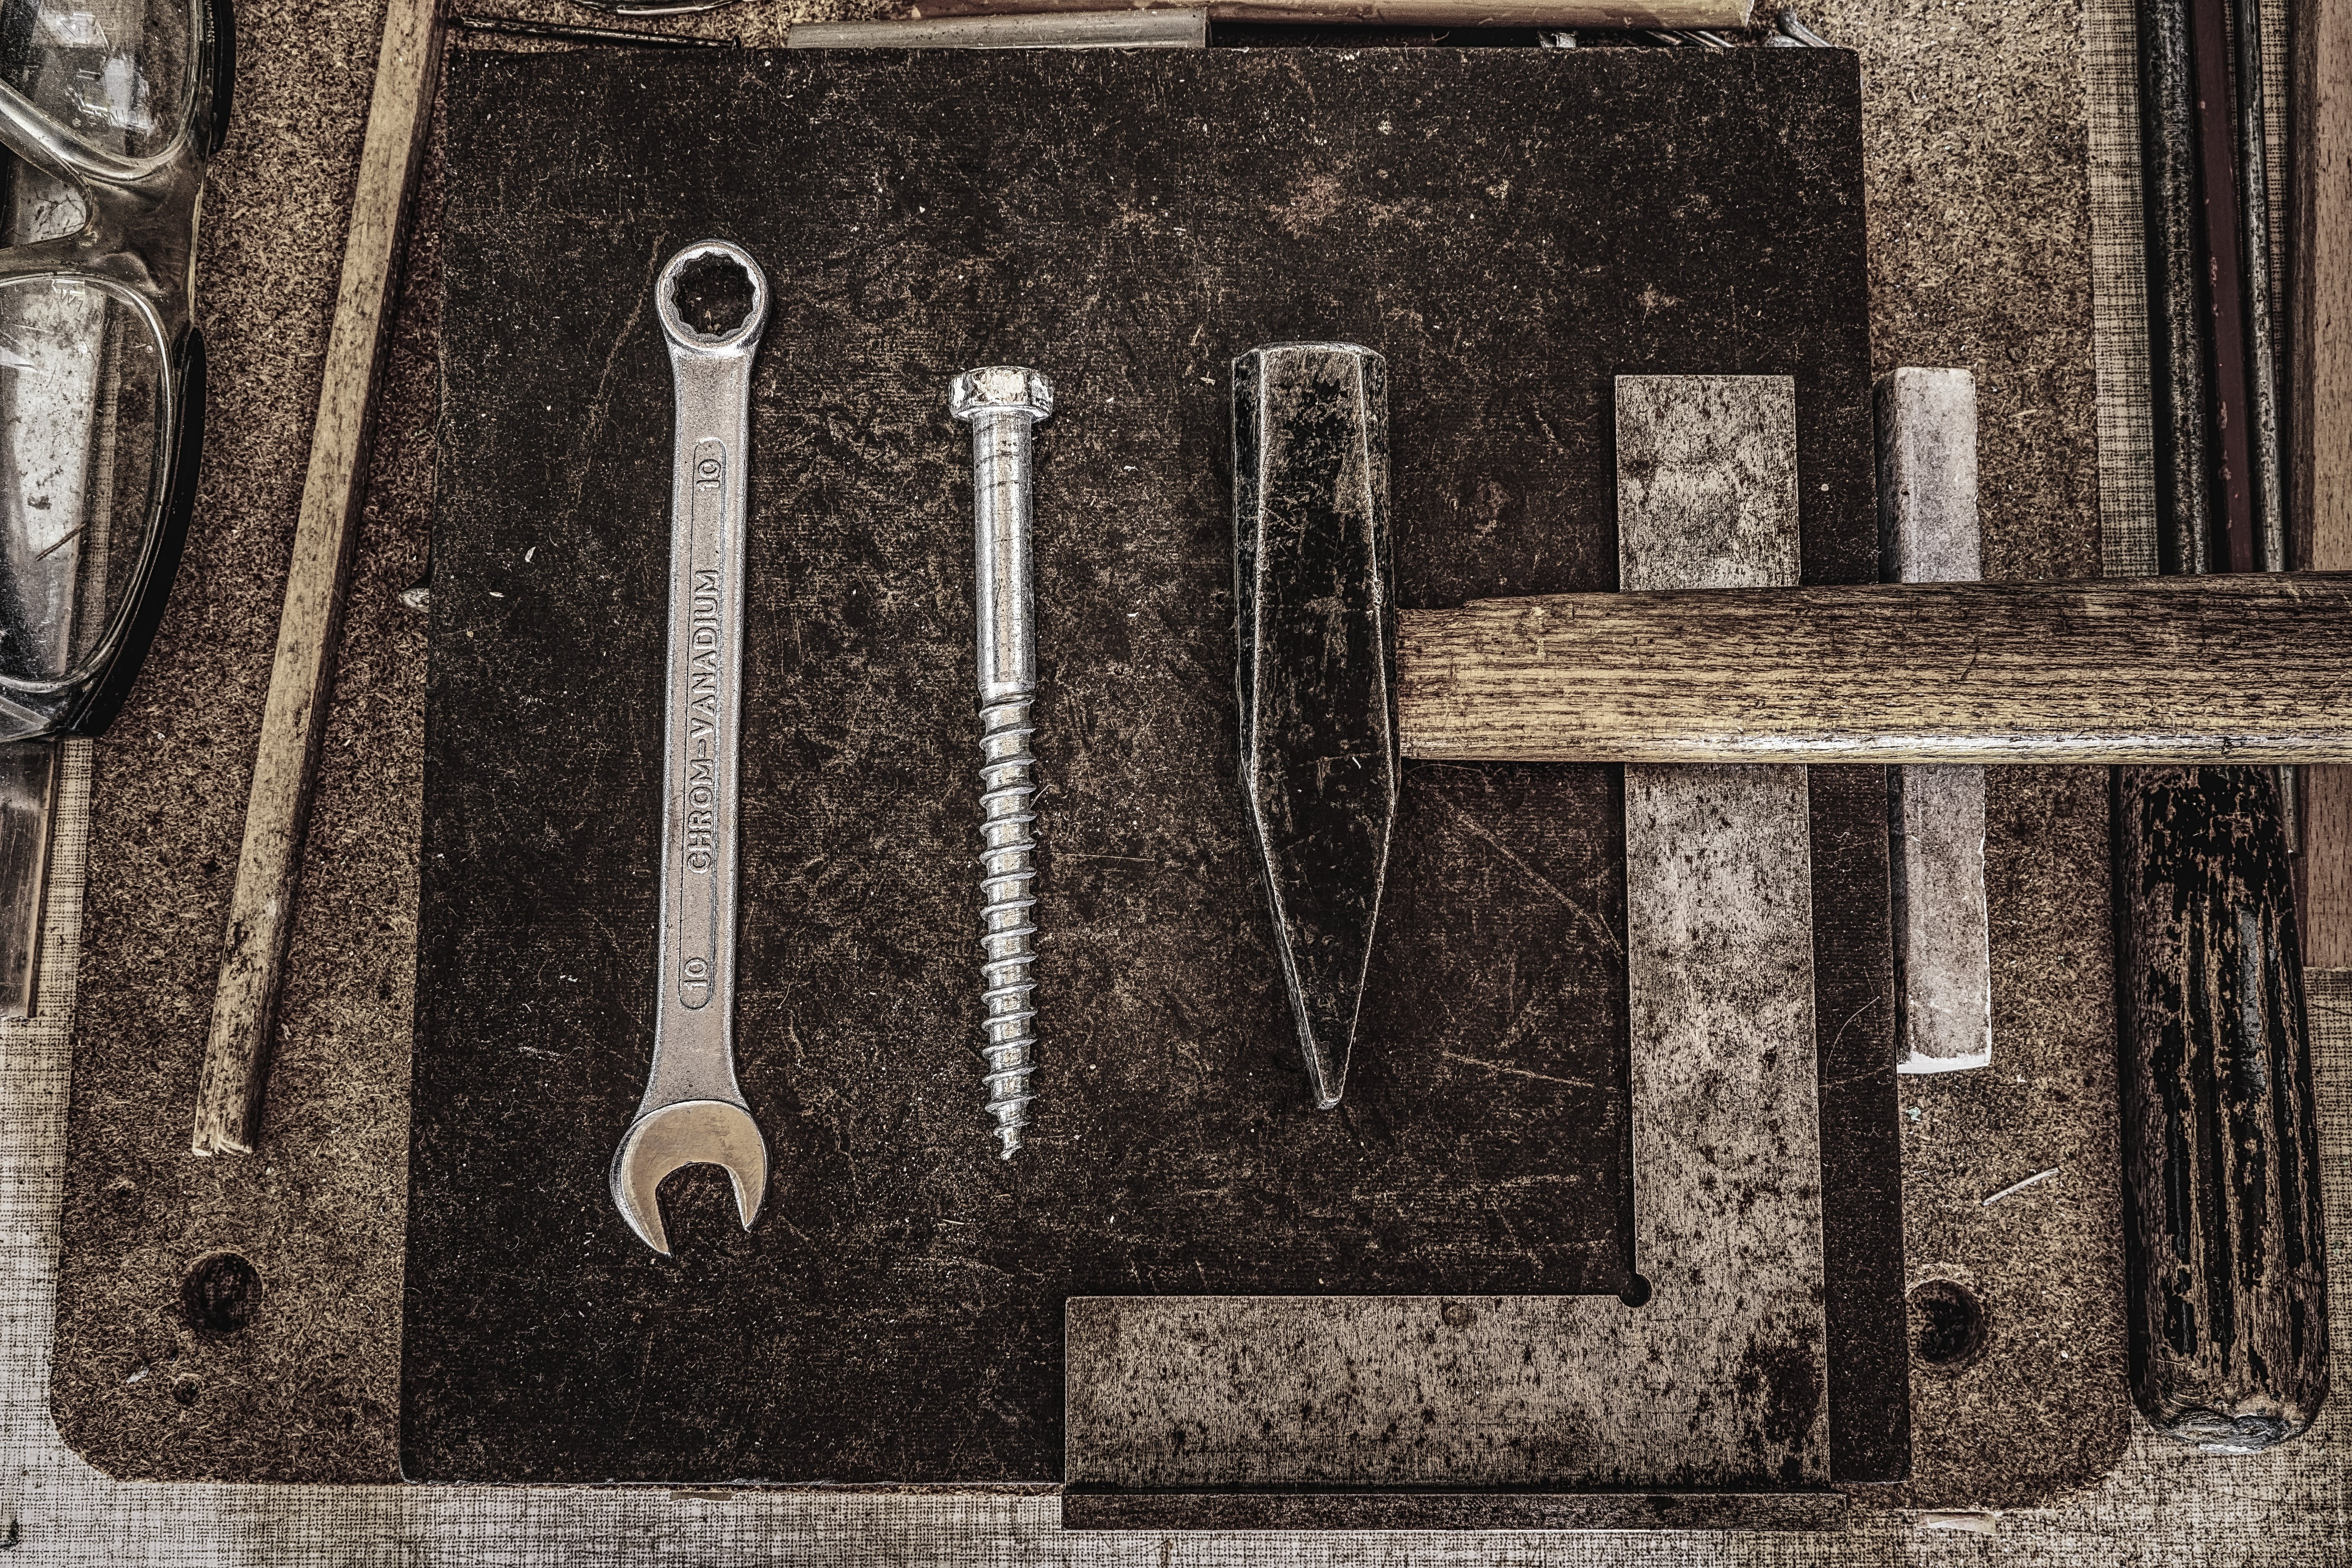 Combination Wrench, Screw Bolt, and Pointed-top Hammer